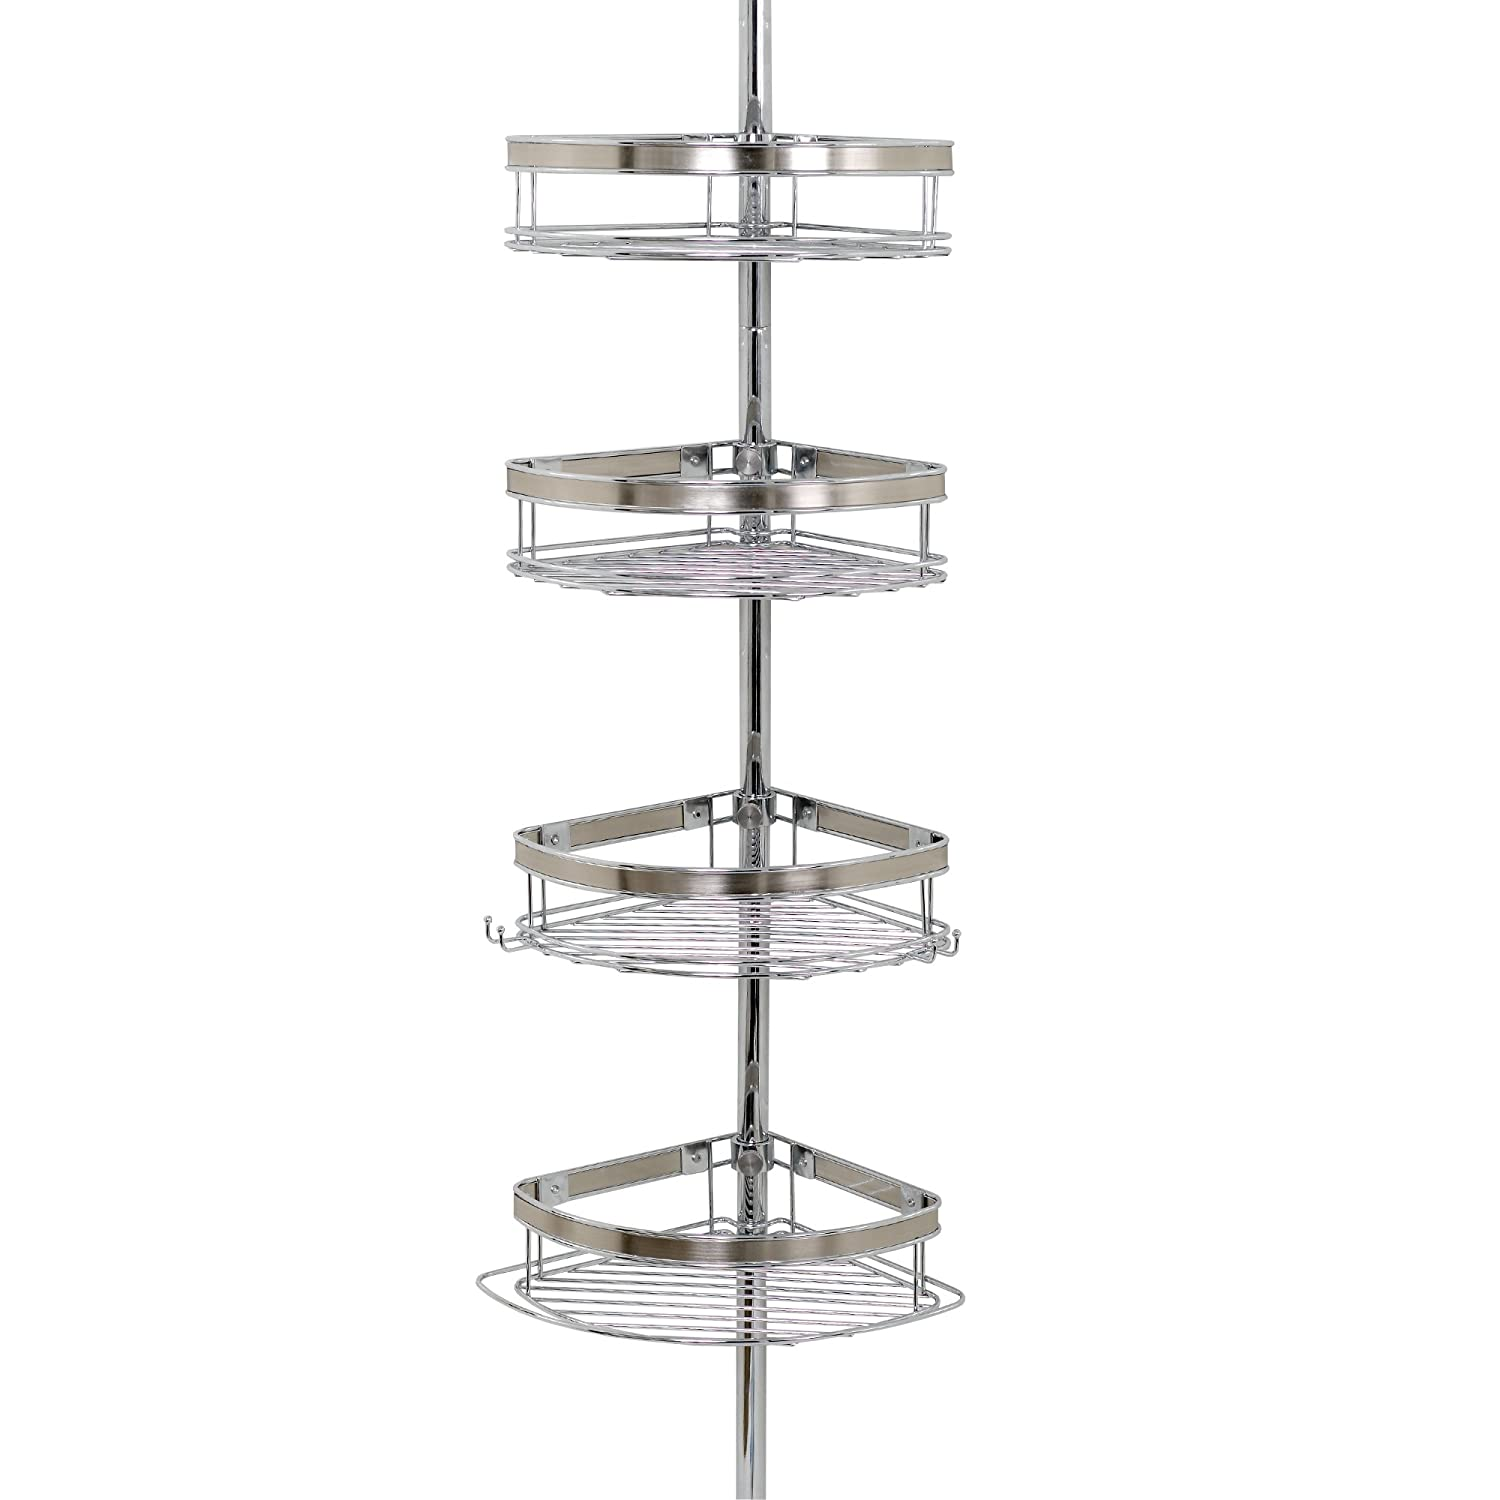 Amazon.com: Zenna Home 2133NS, Tension Corner Pole Caddy, Chrome ...